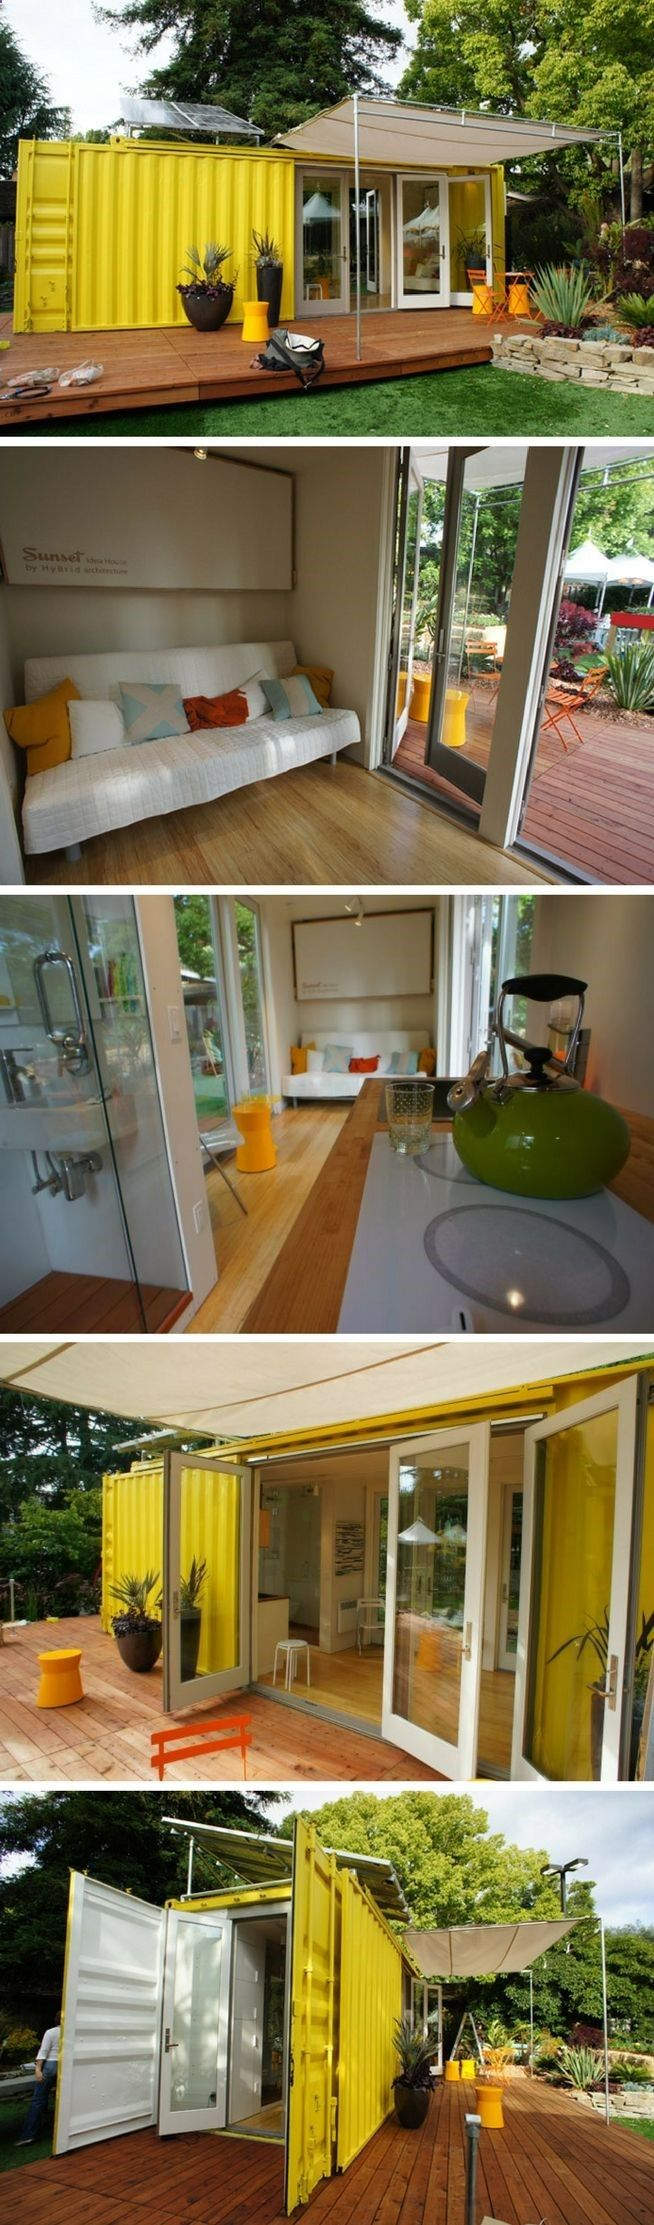 Container House - Container House - C192 NOMAD TINY SHIPPING CONTAINER HOME Who Else Wants Simple Step-By-Step Plans To Design And Build A Container Home From Scratch? - Who Else Wants Simple Step-By-Step Plans To Design And Build A Container Home From Scratch?